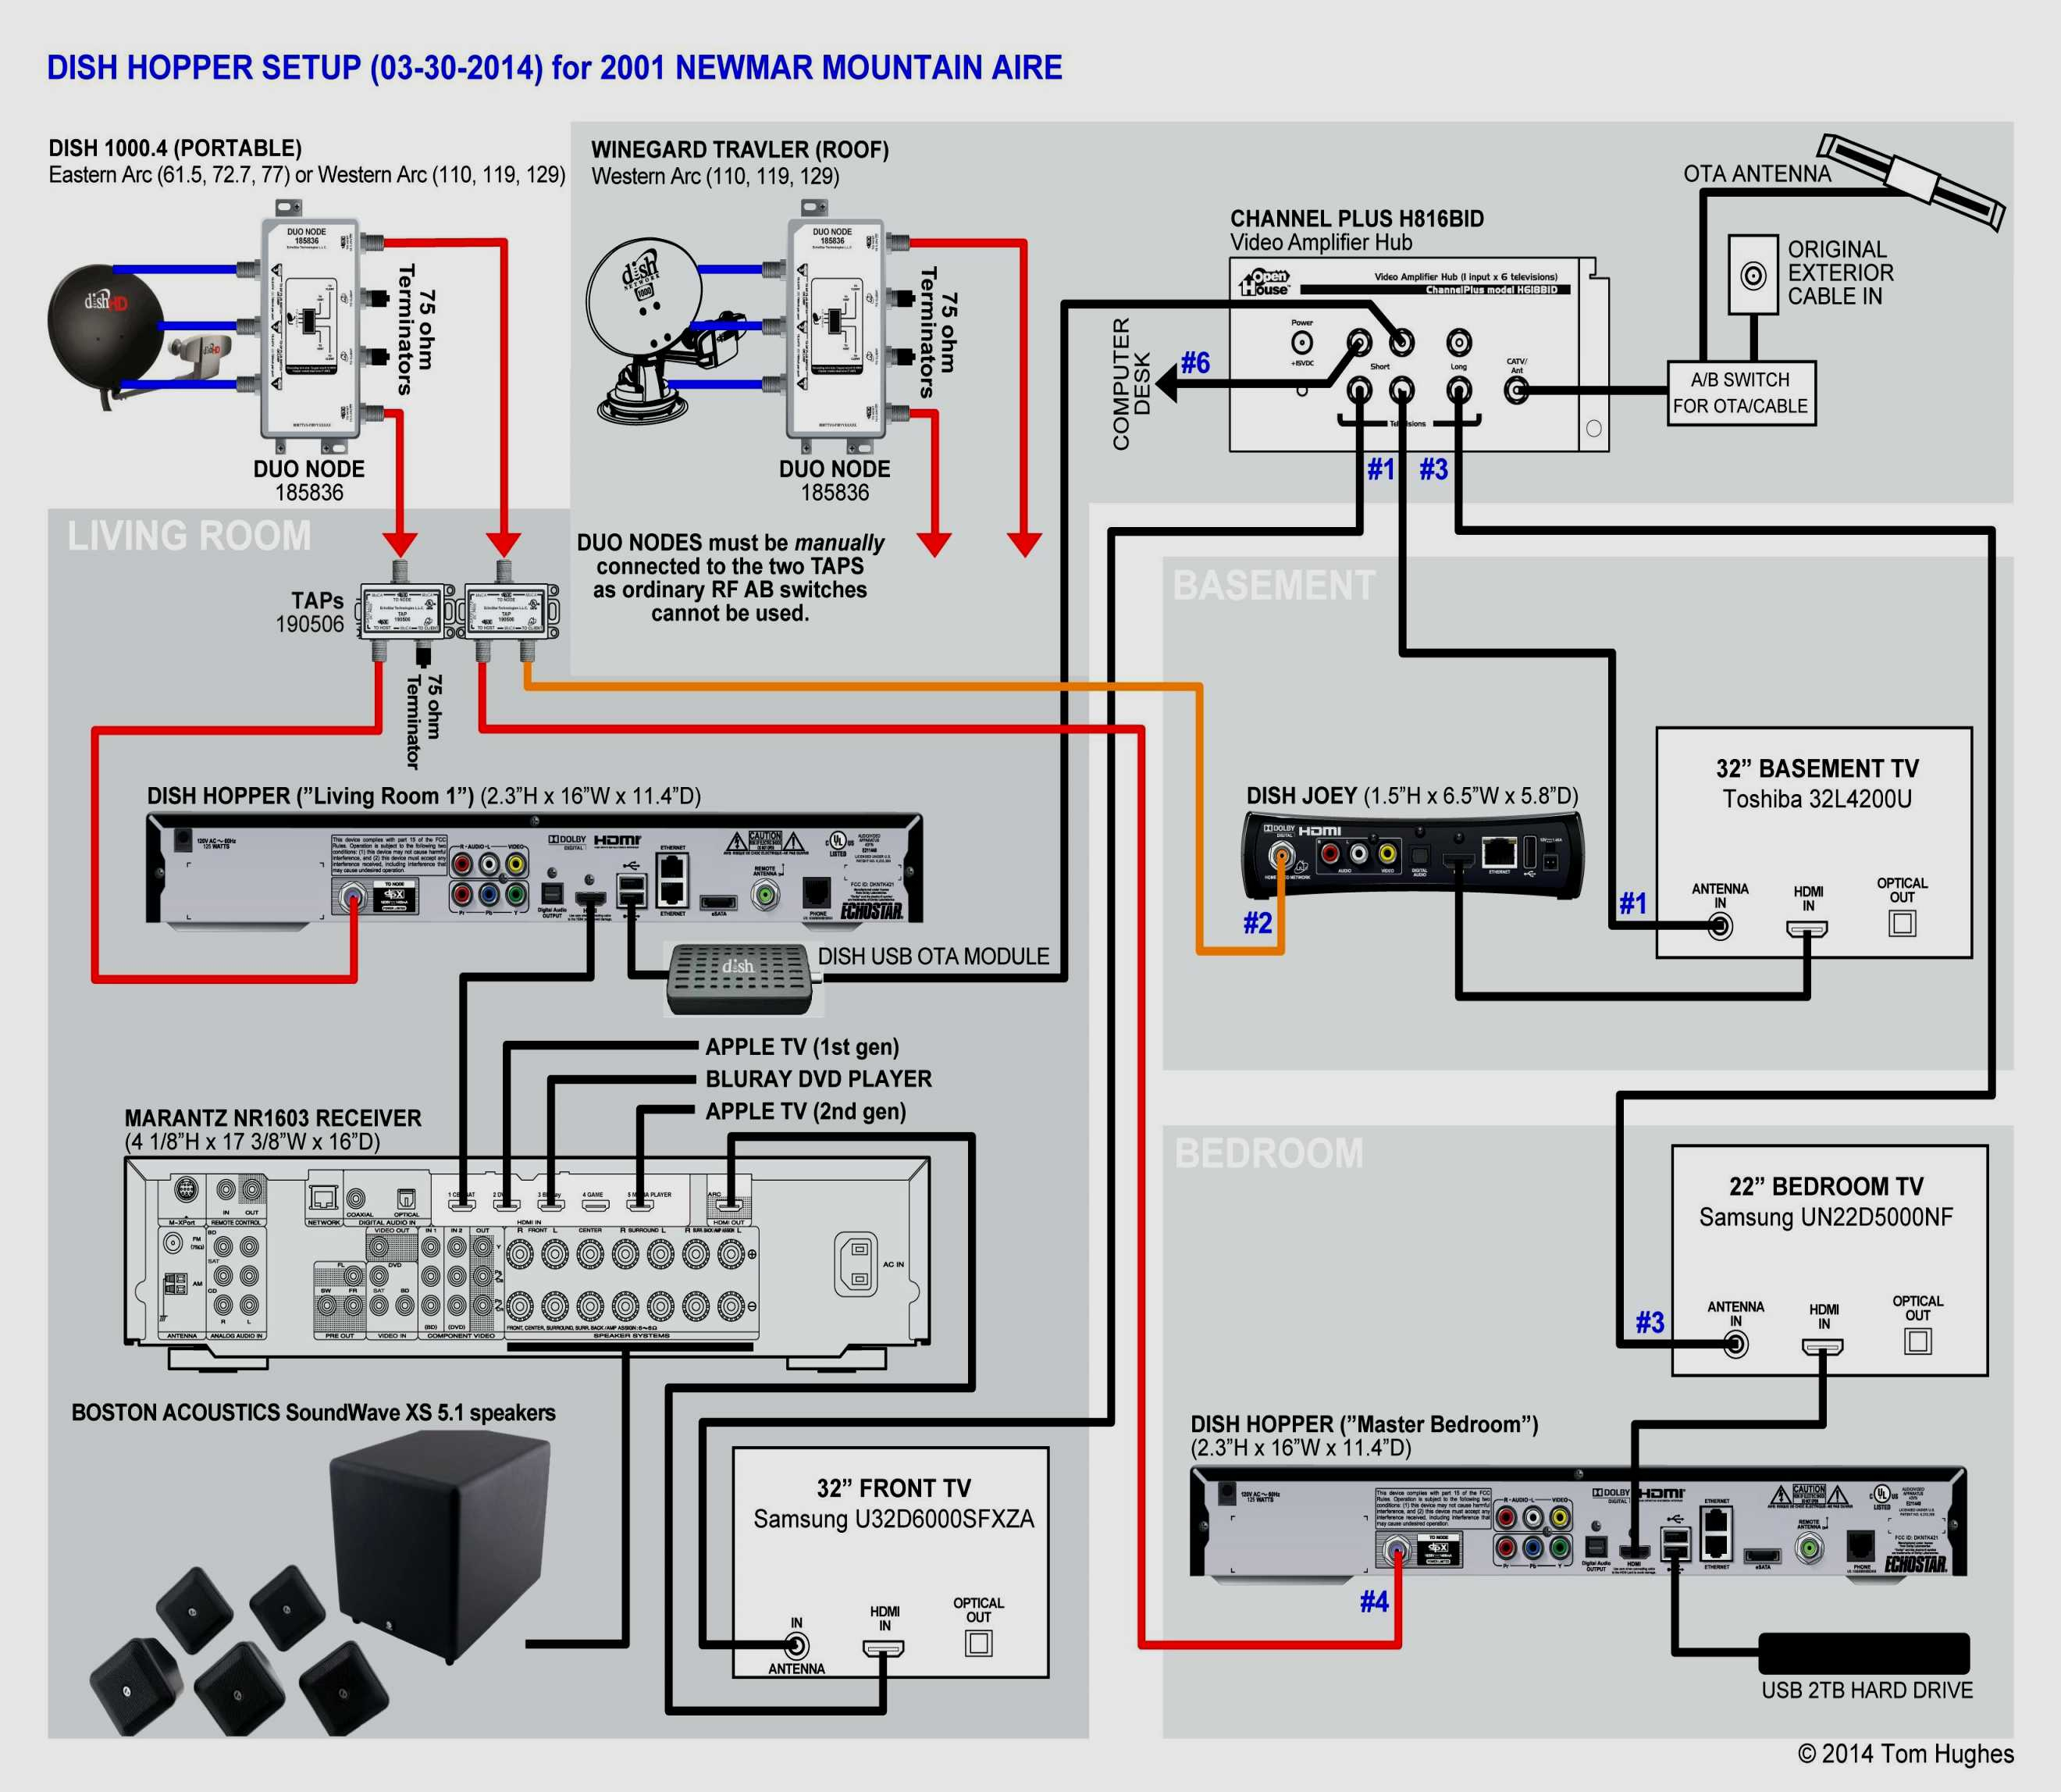 Dish 722K Wiring Diagram | Wiring Diagram - Dish Vip722K Wiring Diagram